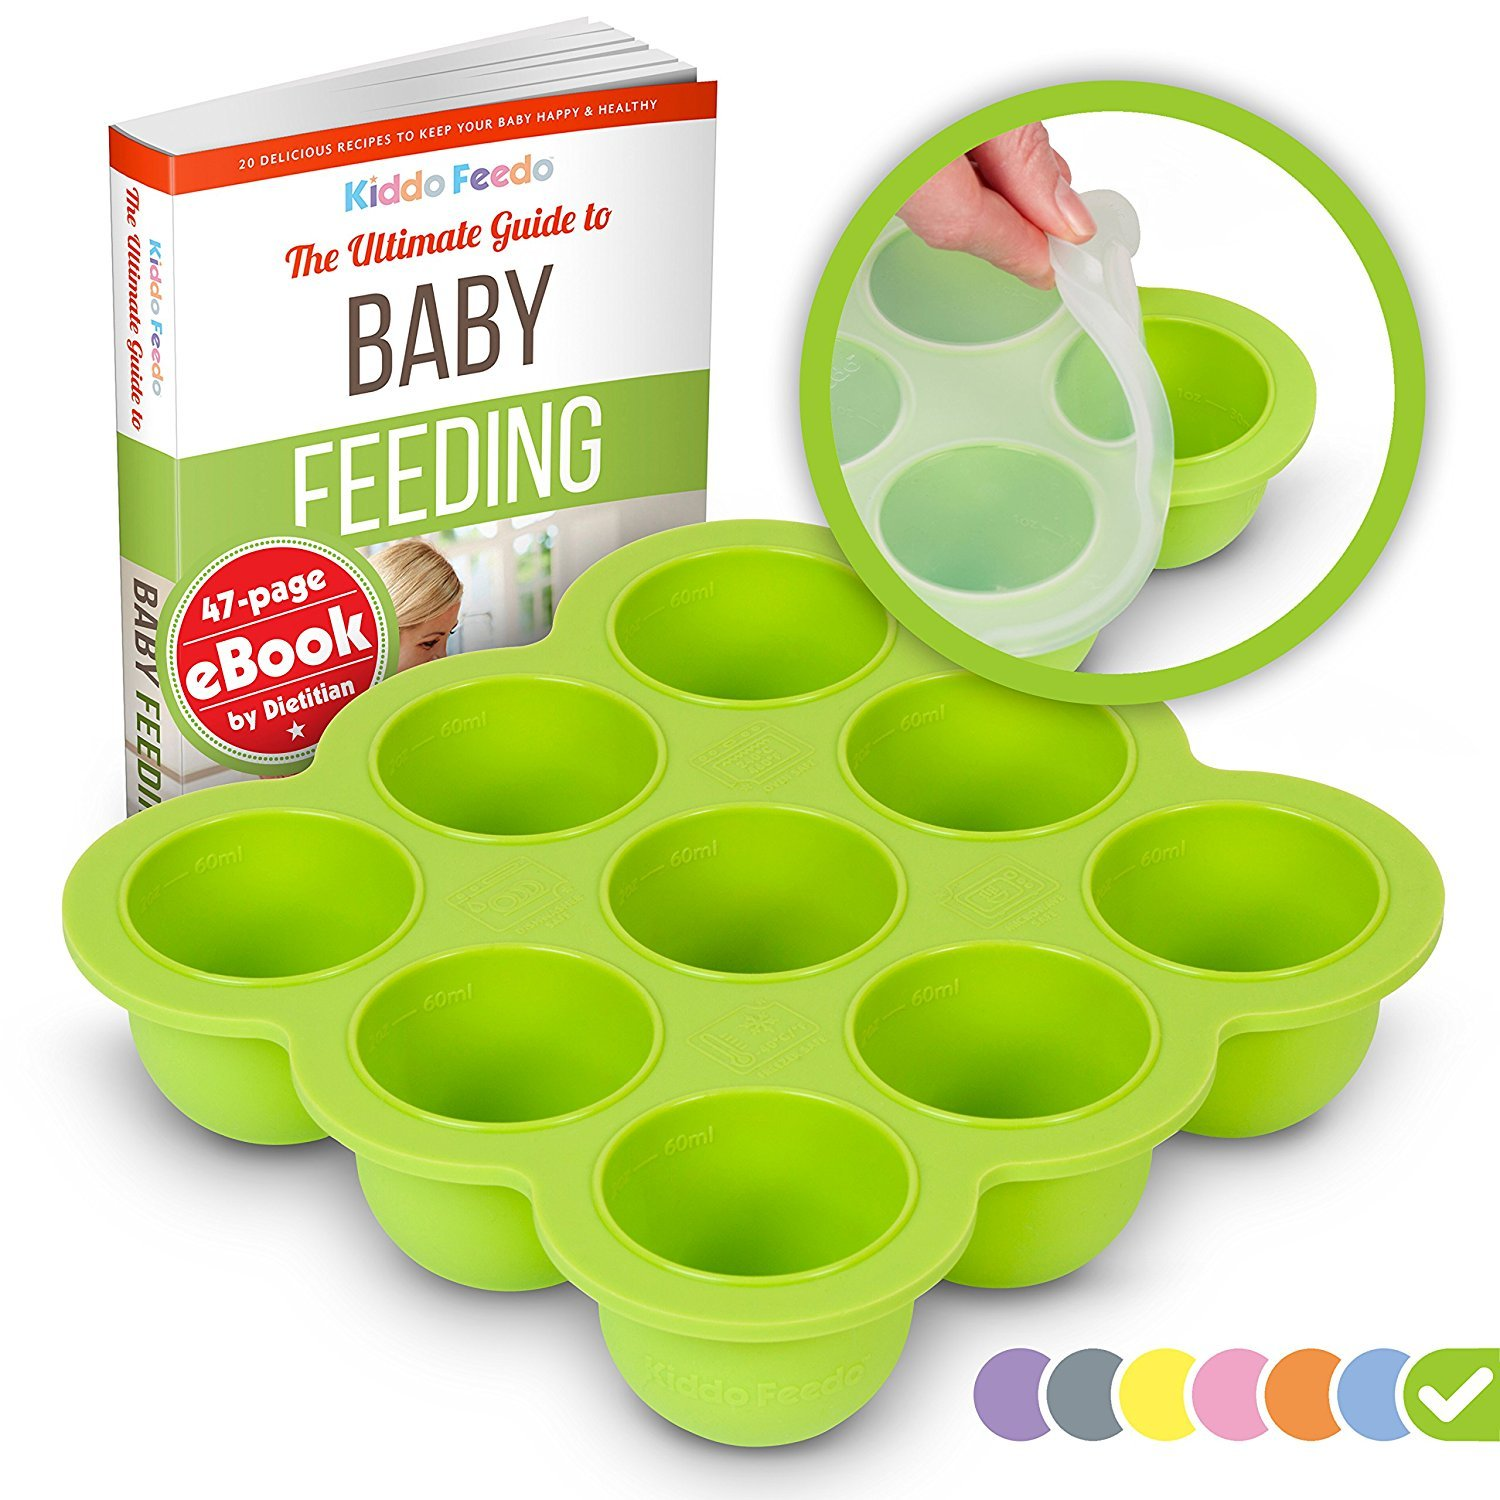 KIDDO FEEDO Baby Food Storage Container and Freezer Tray with Silicone Clip-On Lid - 9x2.5oz Easy-Out Portions - BPA Free/FDA Approved - Free EBook by Award-Winning Author/Dietitian - Green by Kiddo Feedo